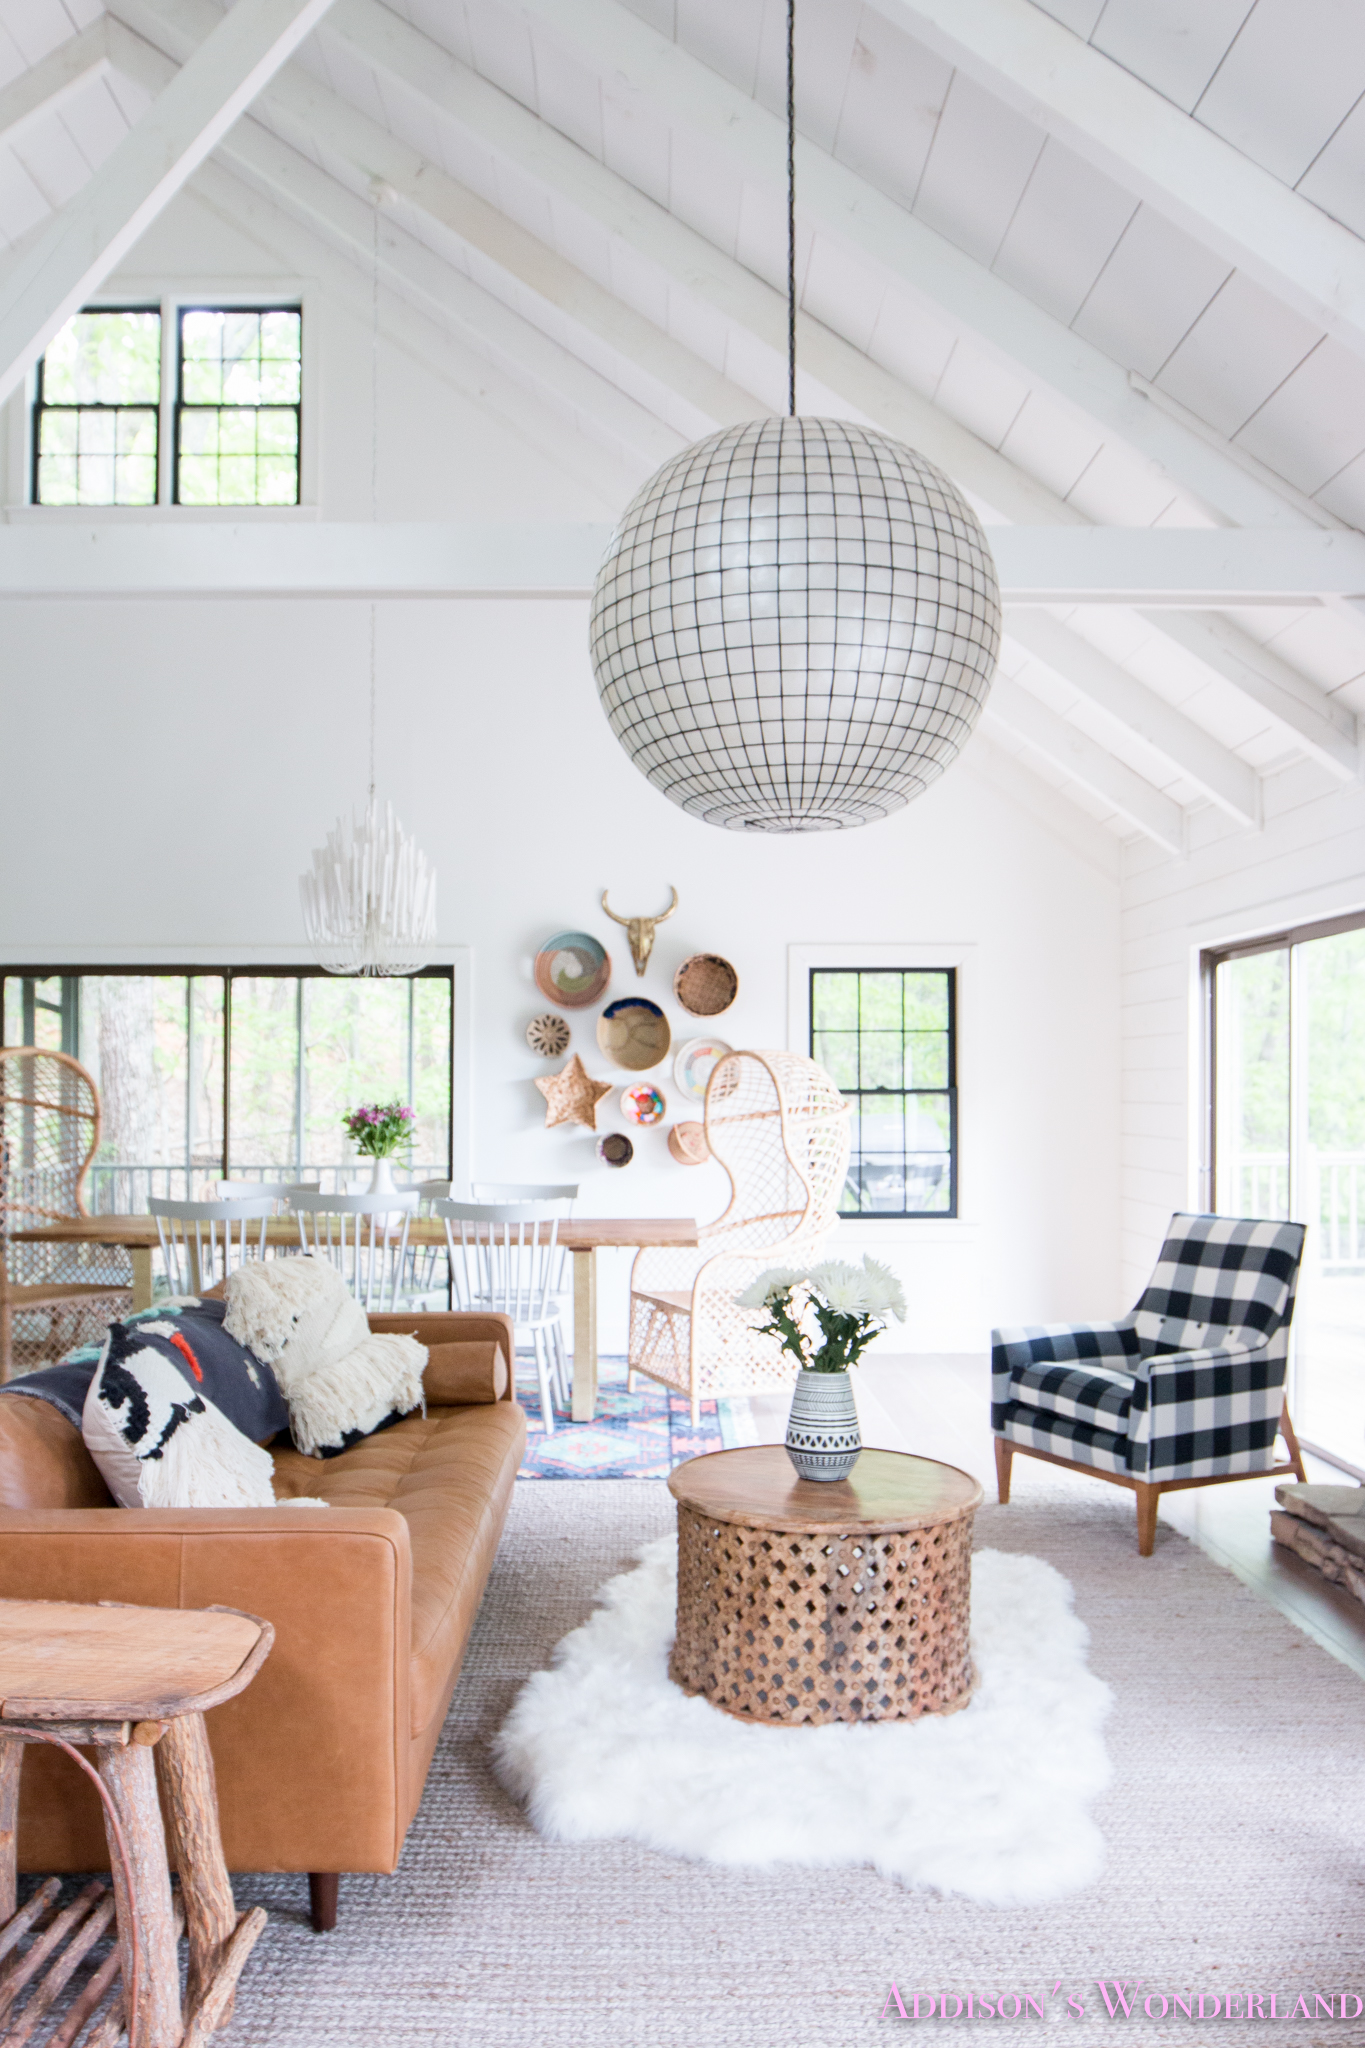 The Cutest Black White Plaid Chairs From Saltbox Lane In Our Cabin